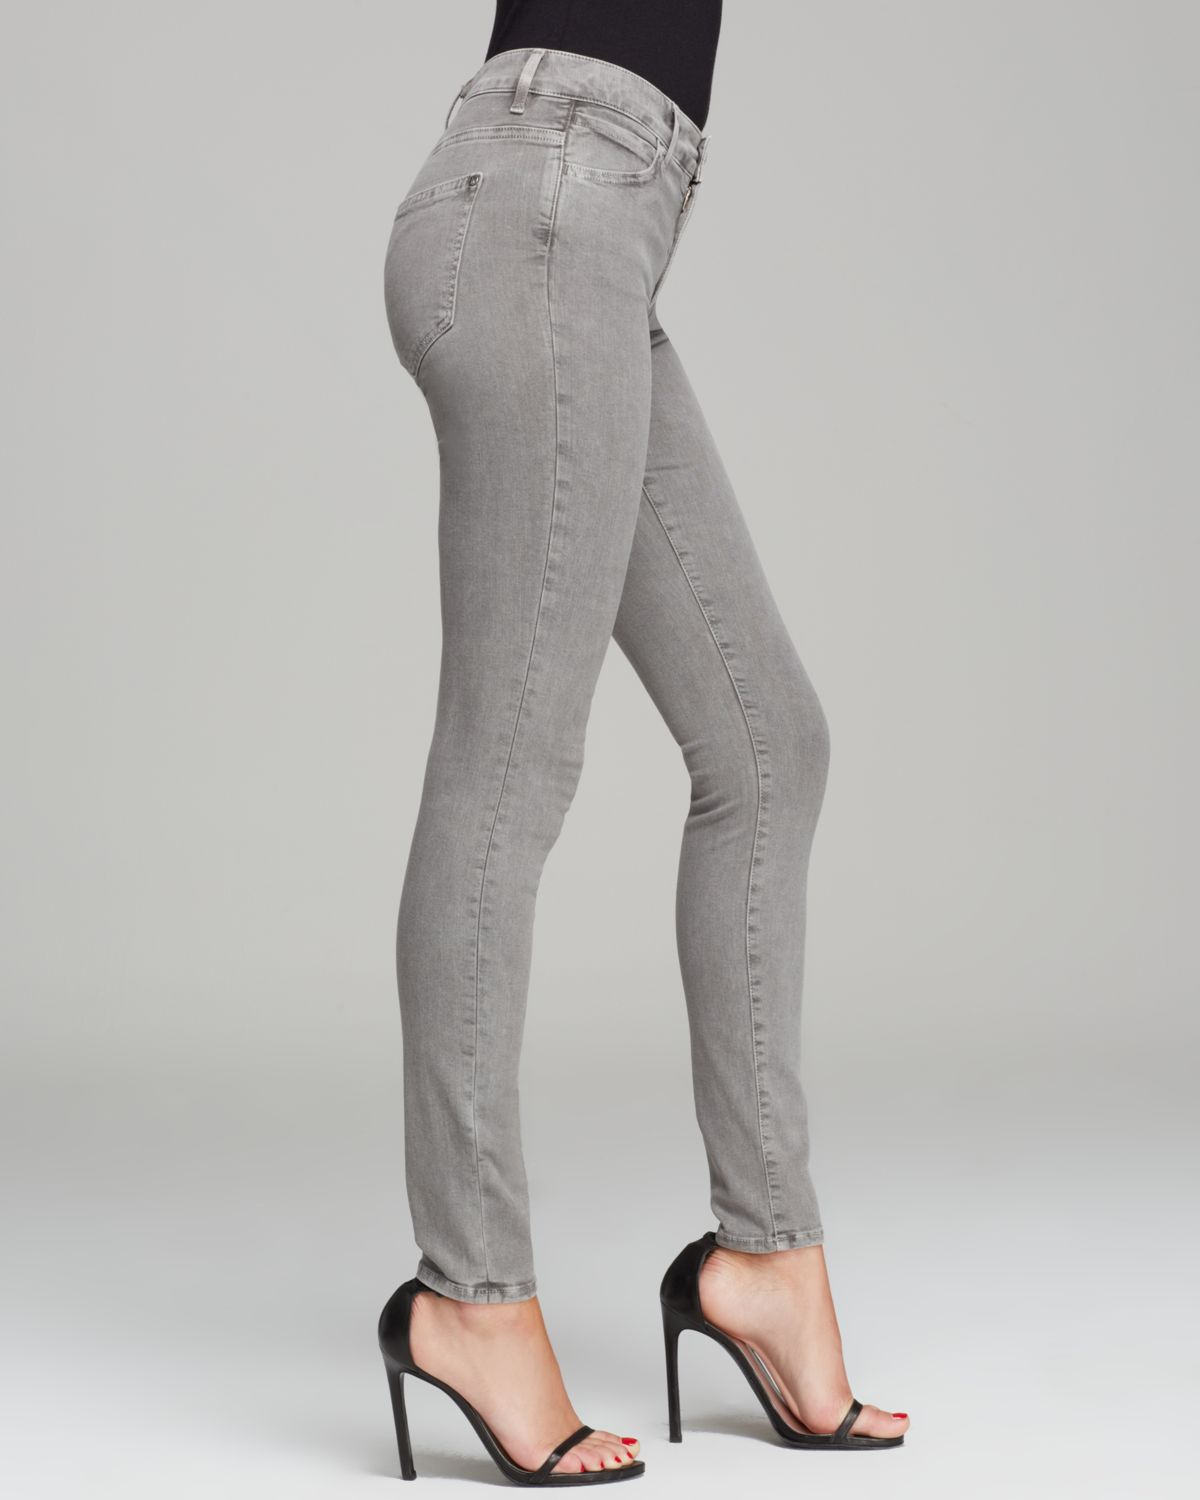 85ec5441dddf Lyst - Koral Jeans High Rise Skinny in Pebble Coated Grey in Gray